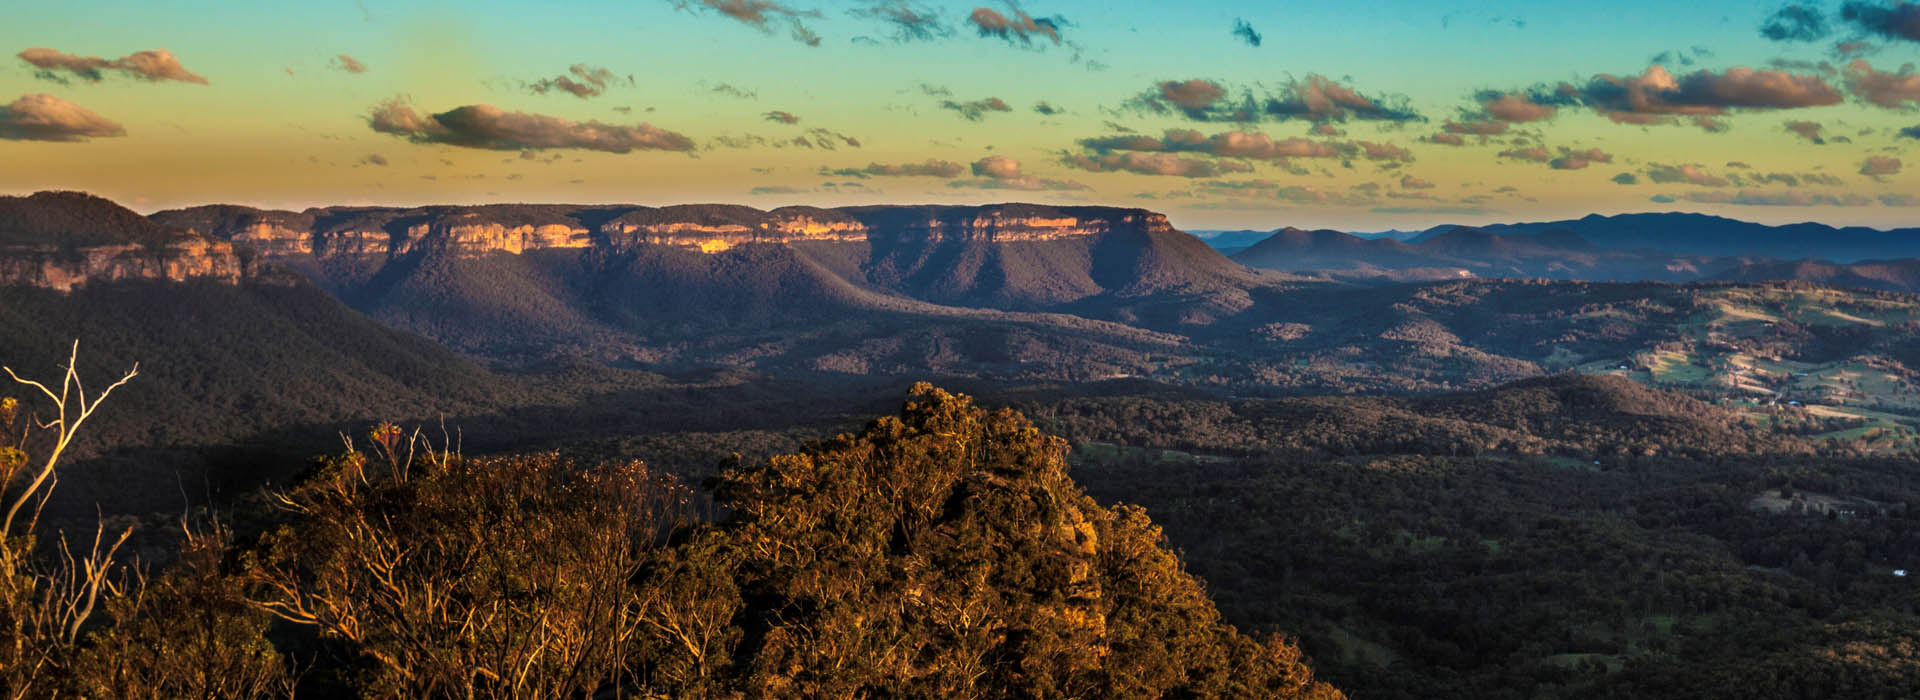 Home to the Famous Three Sister, Scenic World, Leura Cascades and Wentworth Falls.